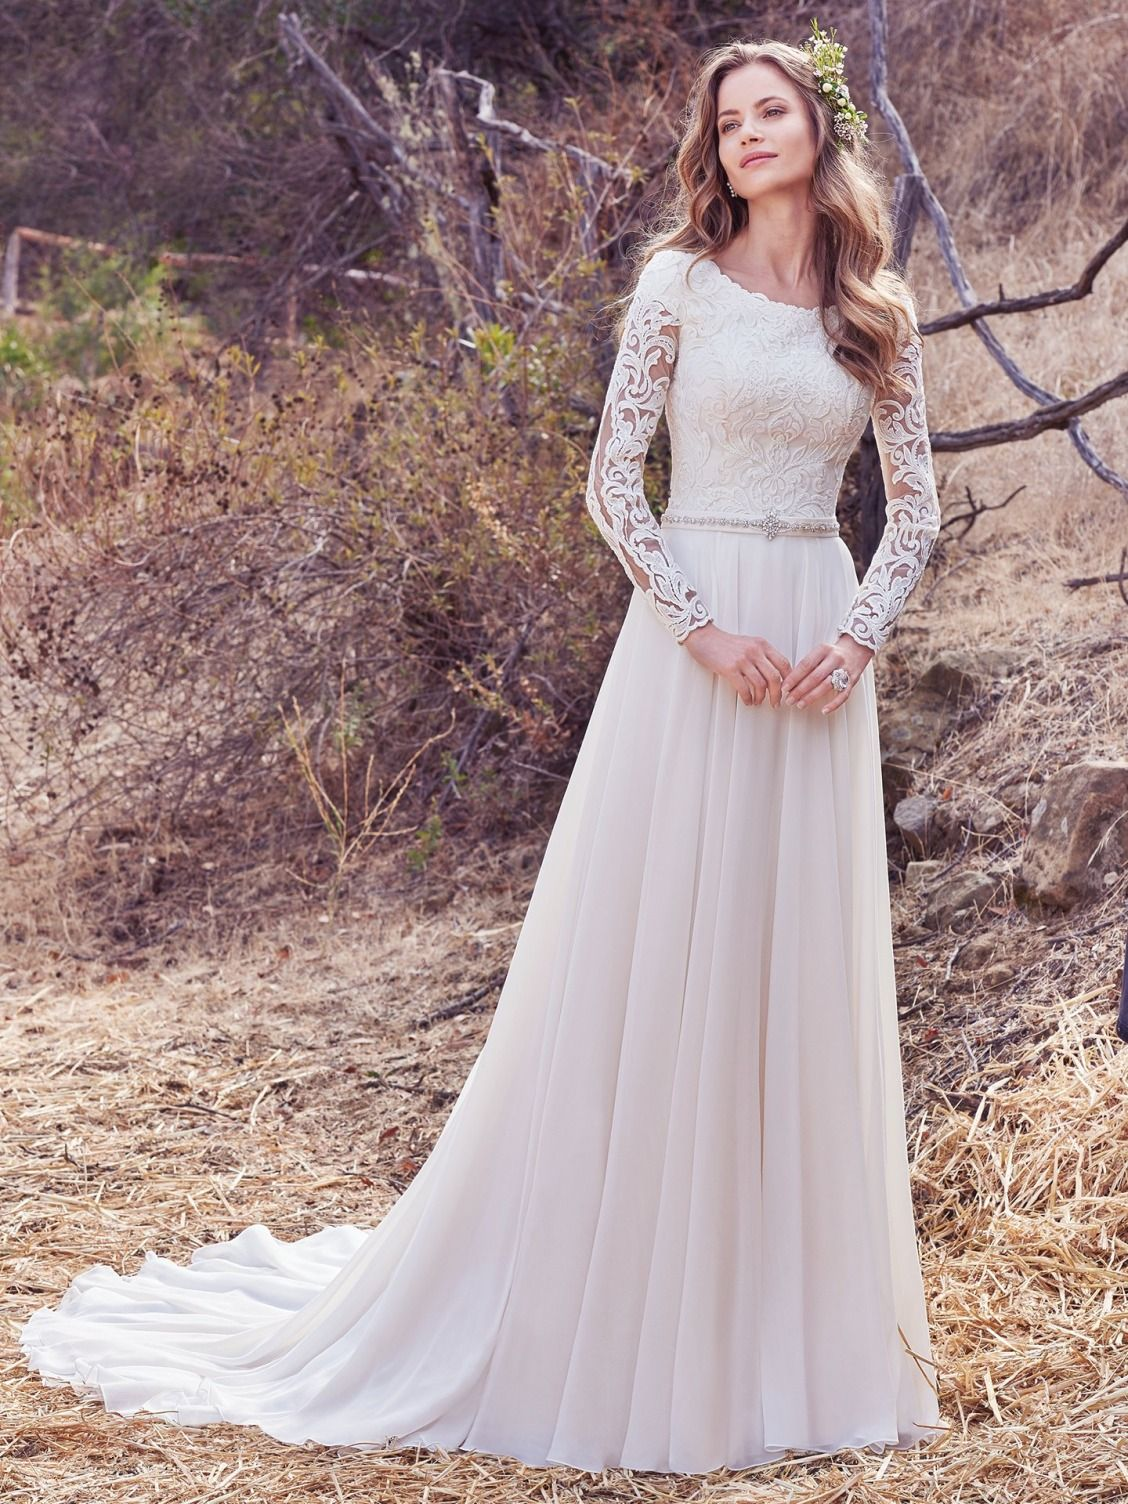 DARCY MARIE by Maggie Sottero Wedding Dresses in 2019  876ffc503034